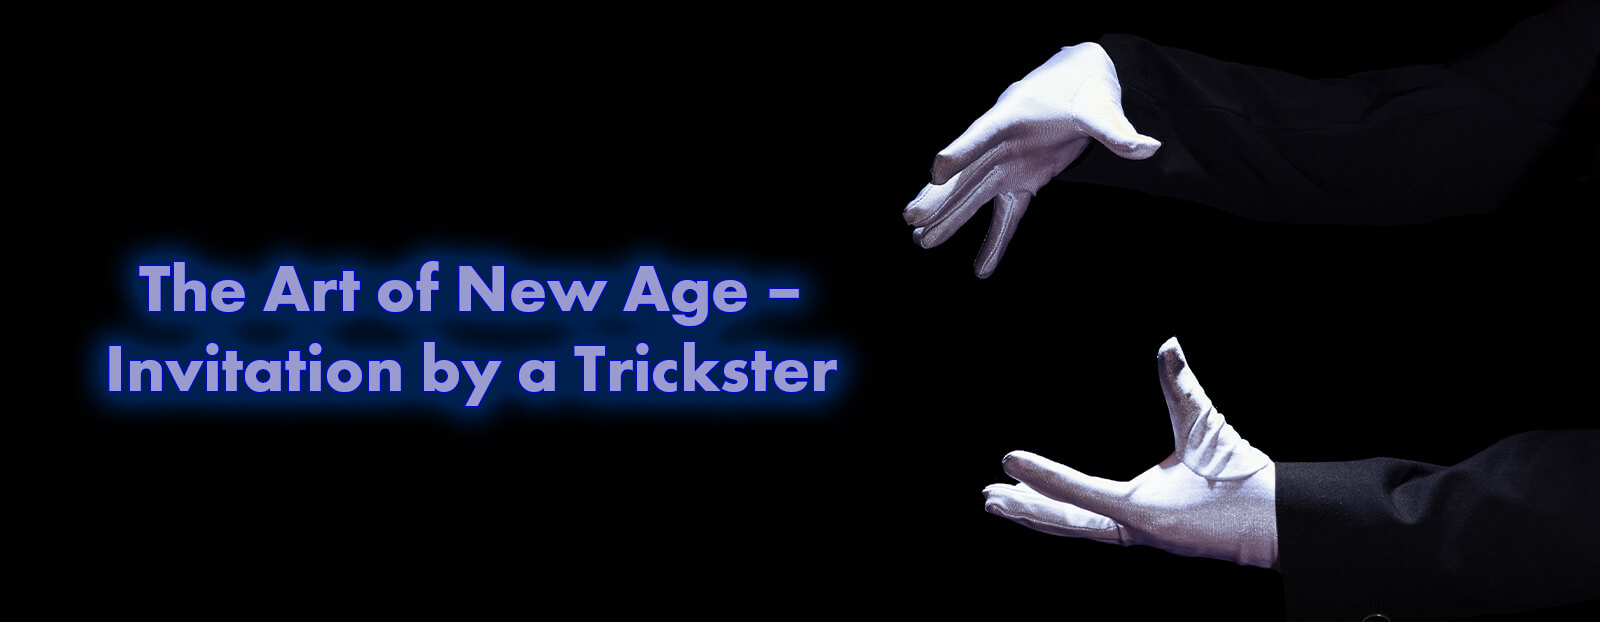 The Art of New Age – Invitation by a Trickster